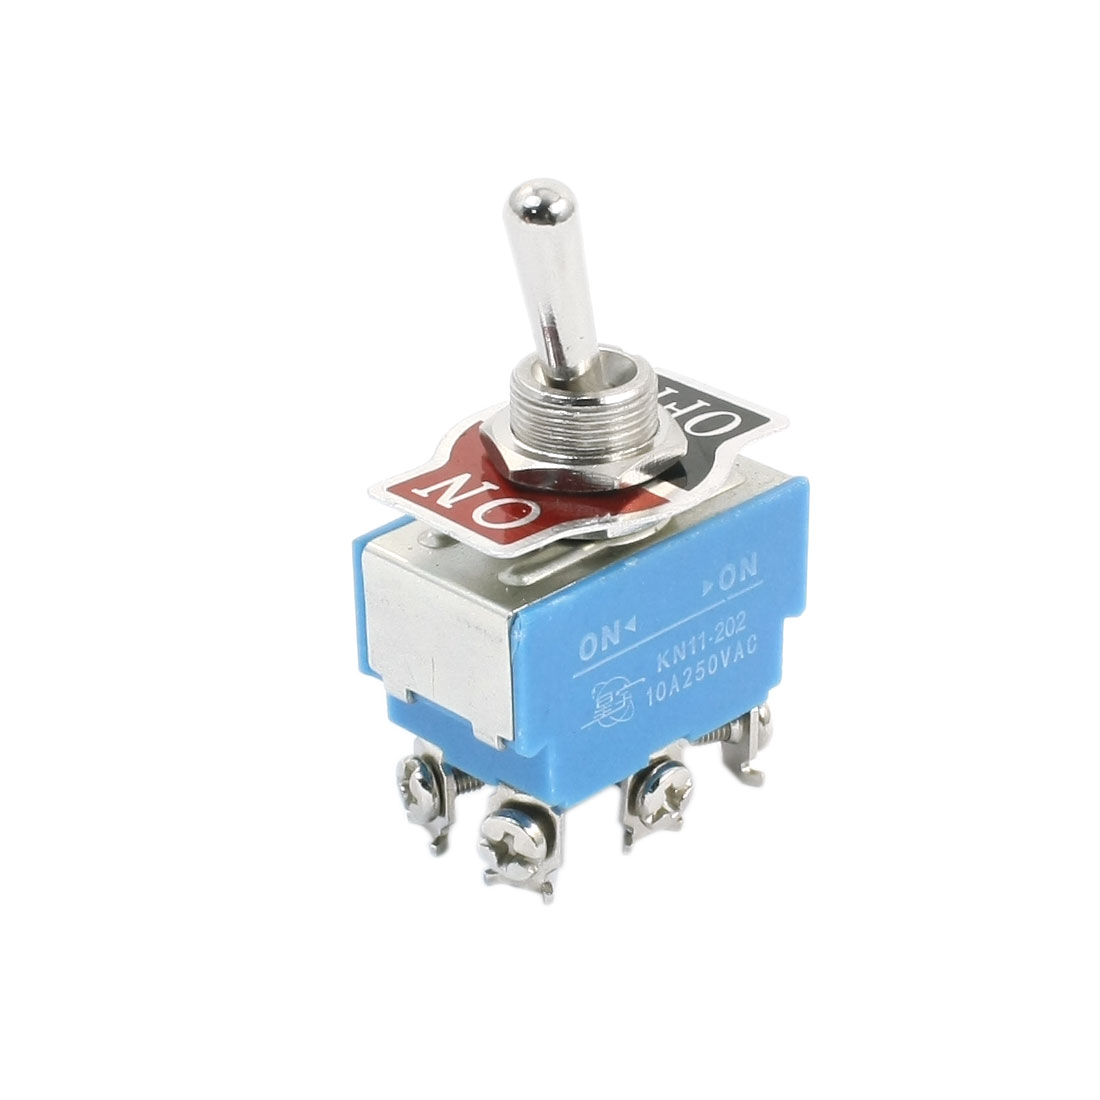 KN11-202 2 Positions DPDT 6 Screw Terminals Toggle Switch AC250V 10A